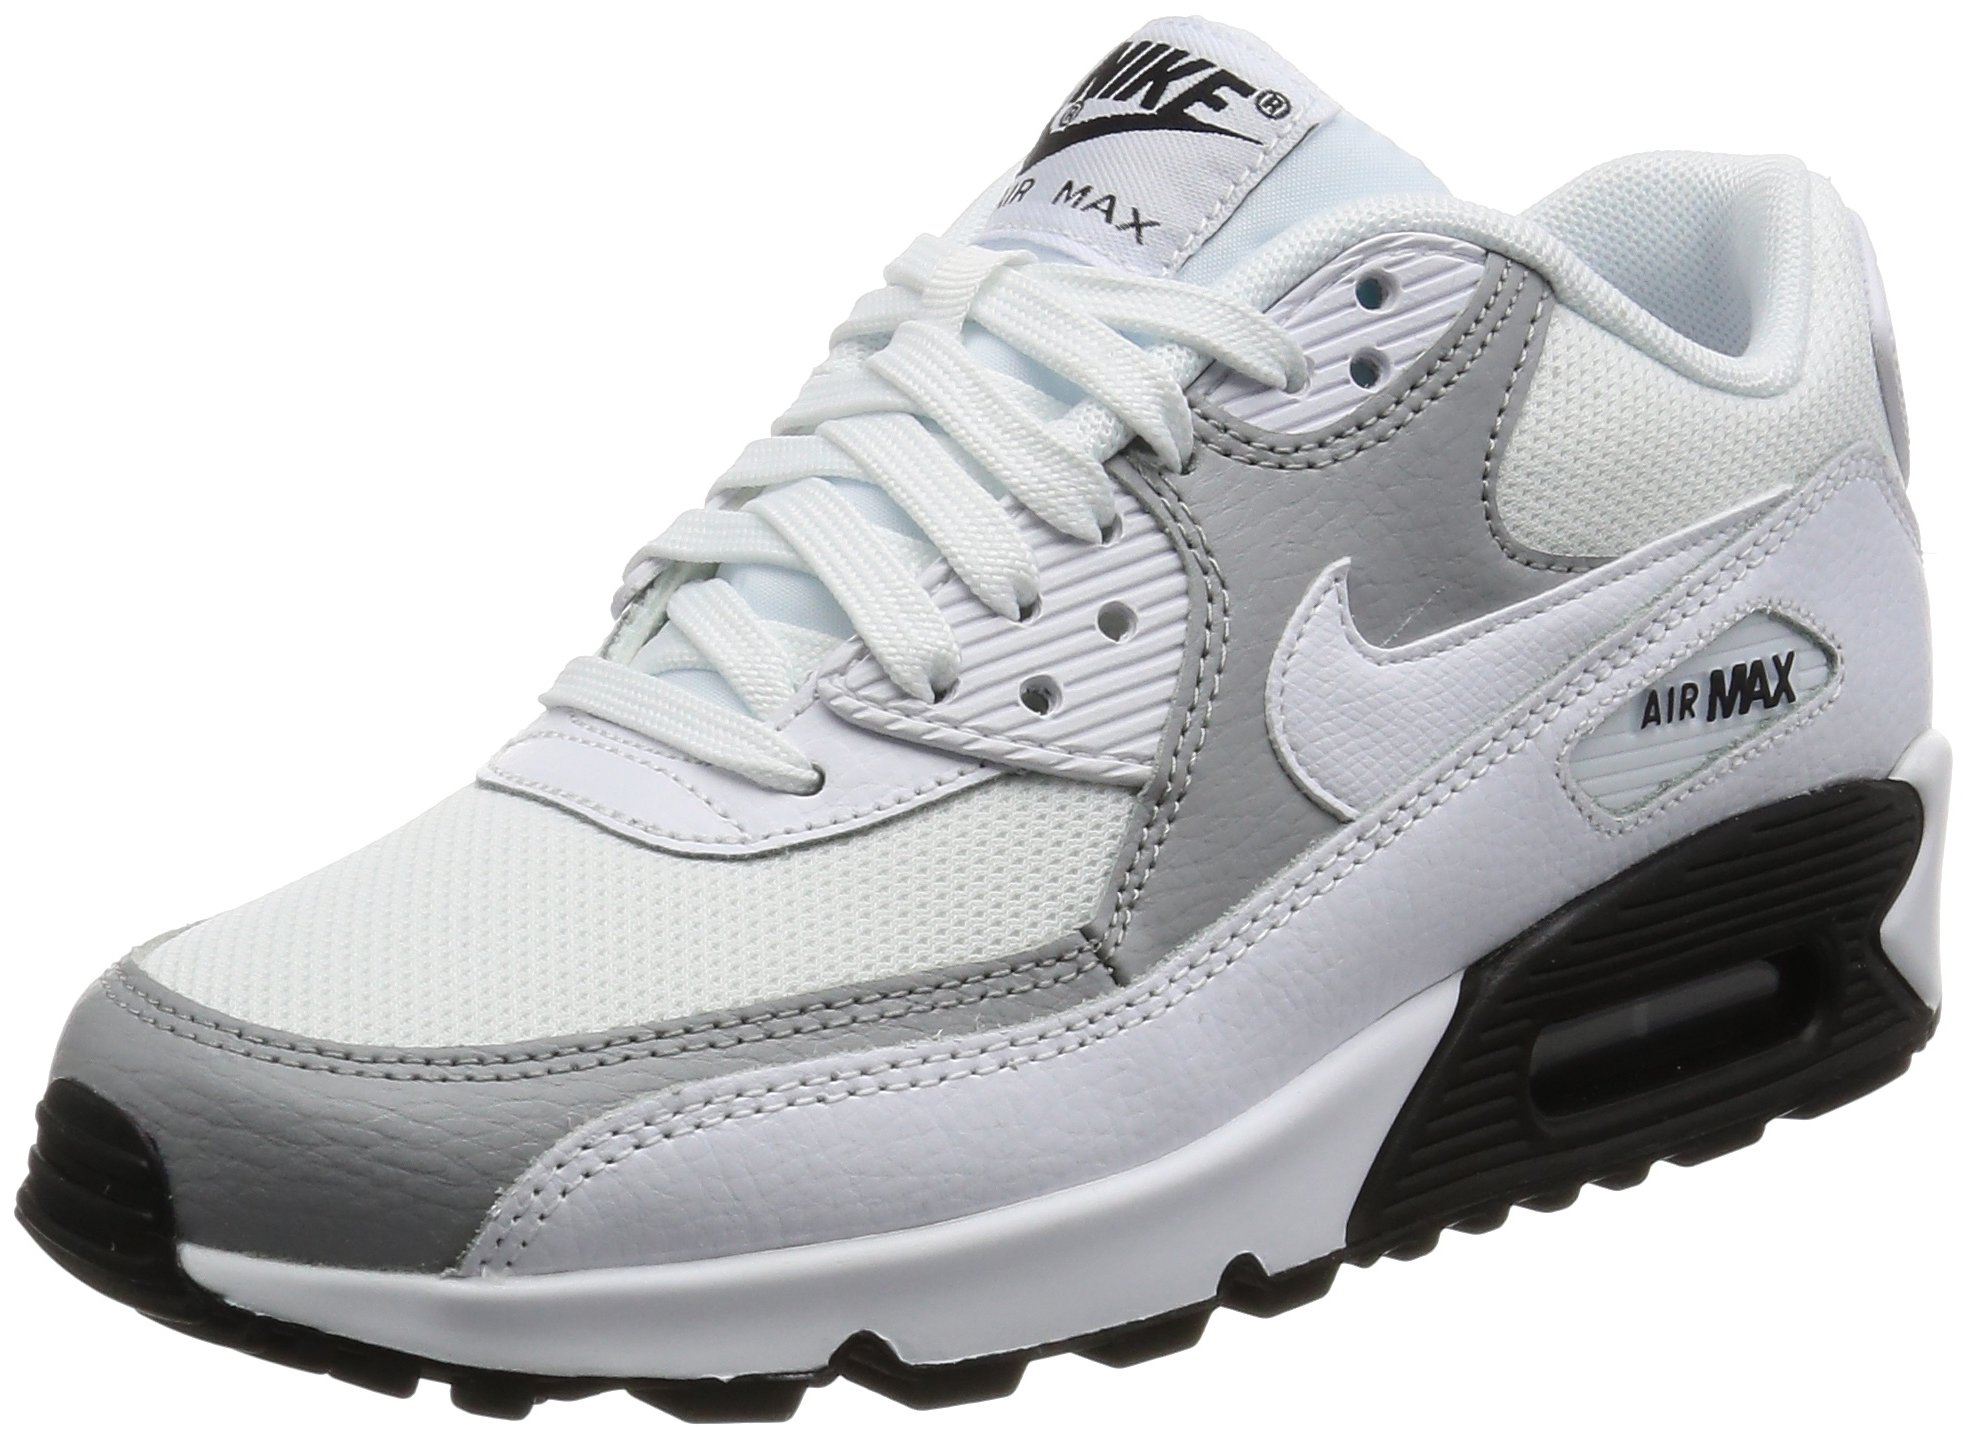 35d3baa8142d29 Galleon - Nike Women s Air Max 90 White White Wolf Grey Black Running Shoe  (6 B(M) US)